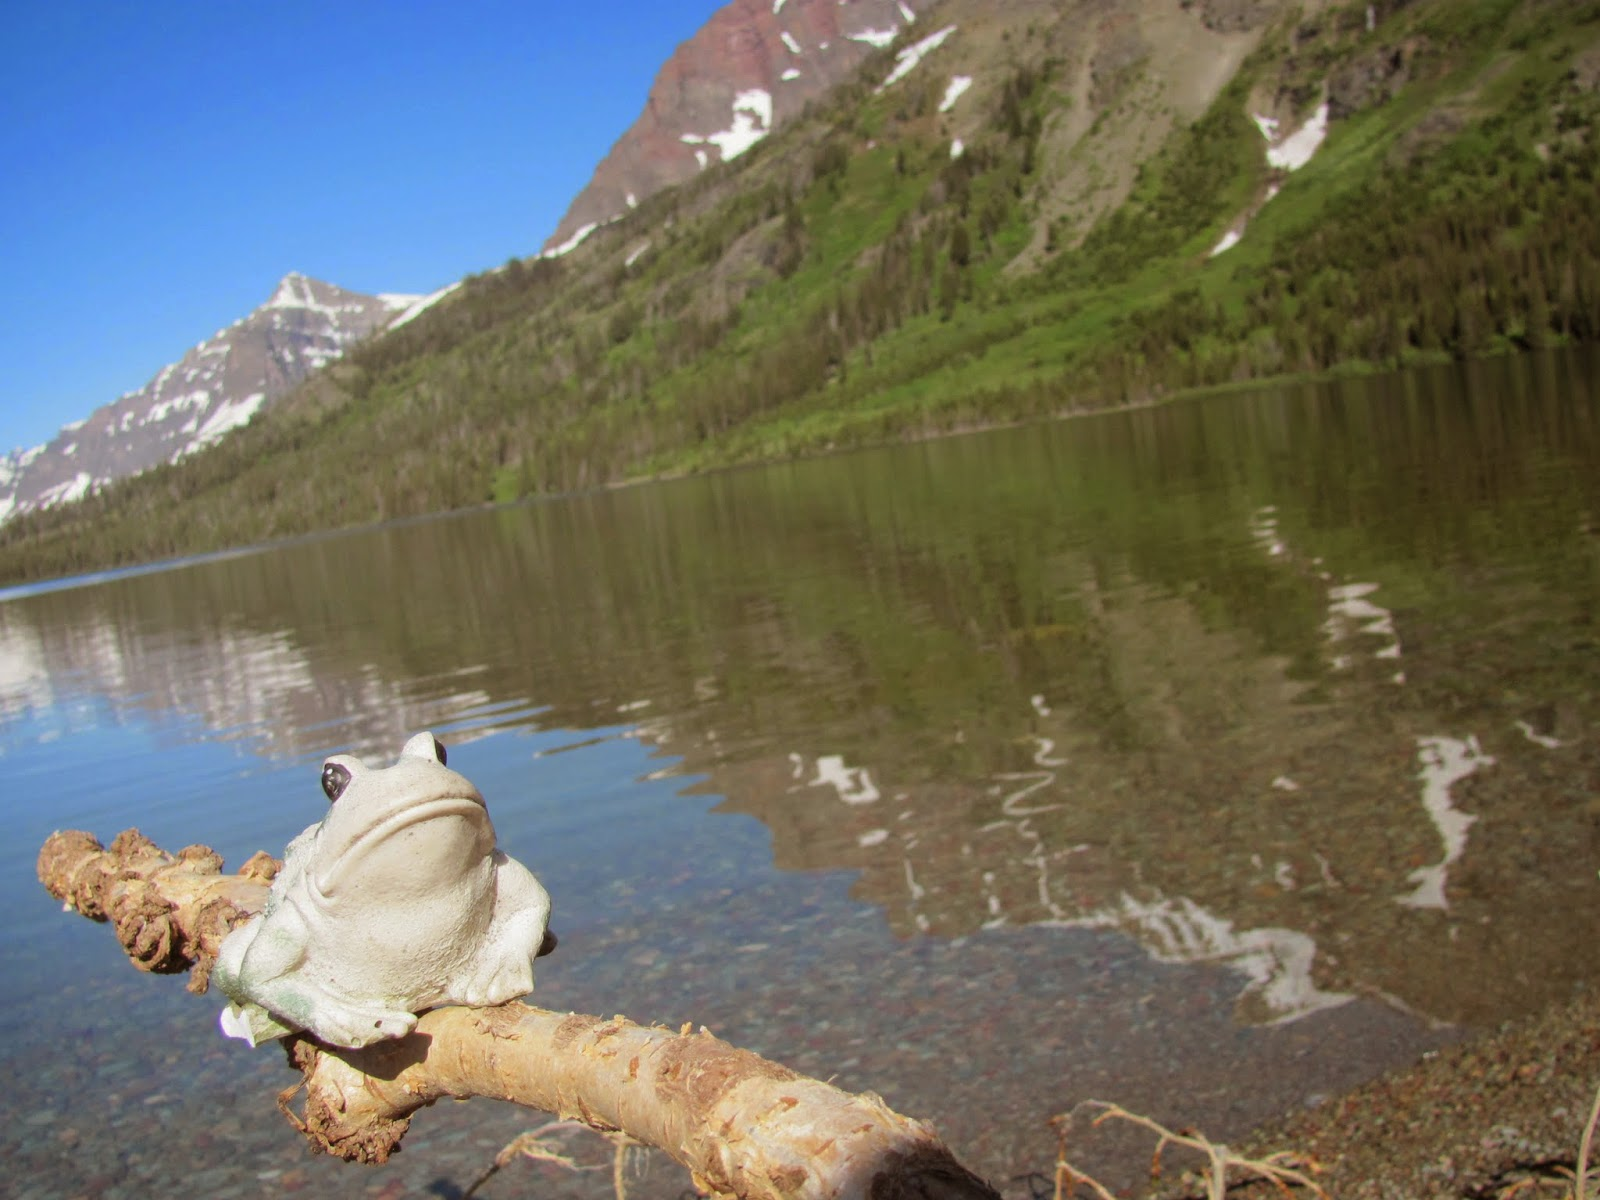 Frog poses on the bank of Two Medicine Lake at Glacier National Park in Montana